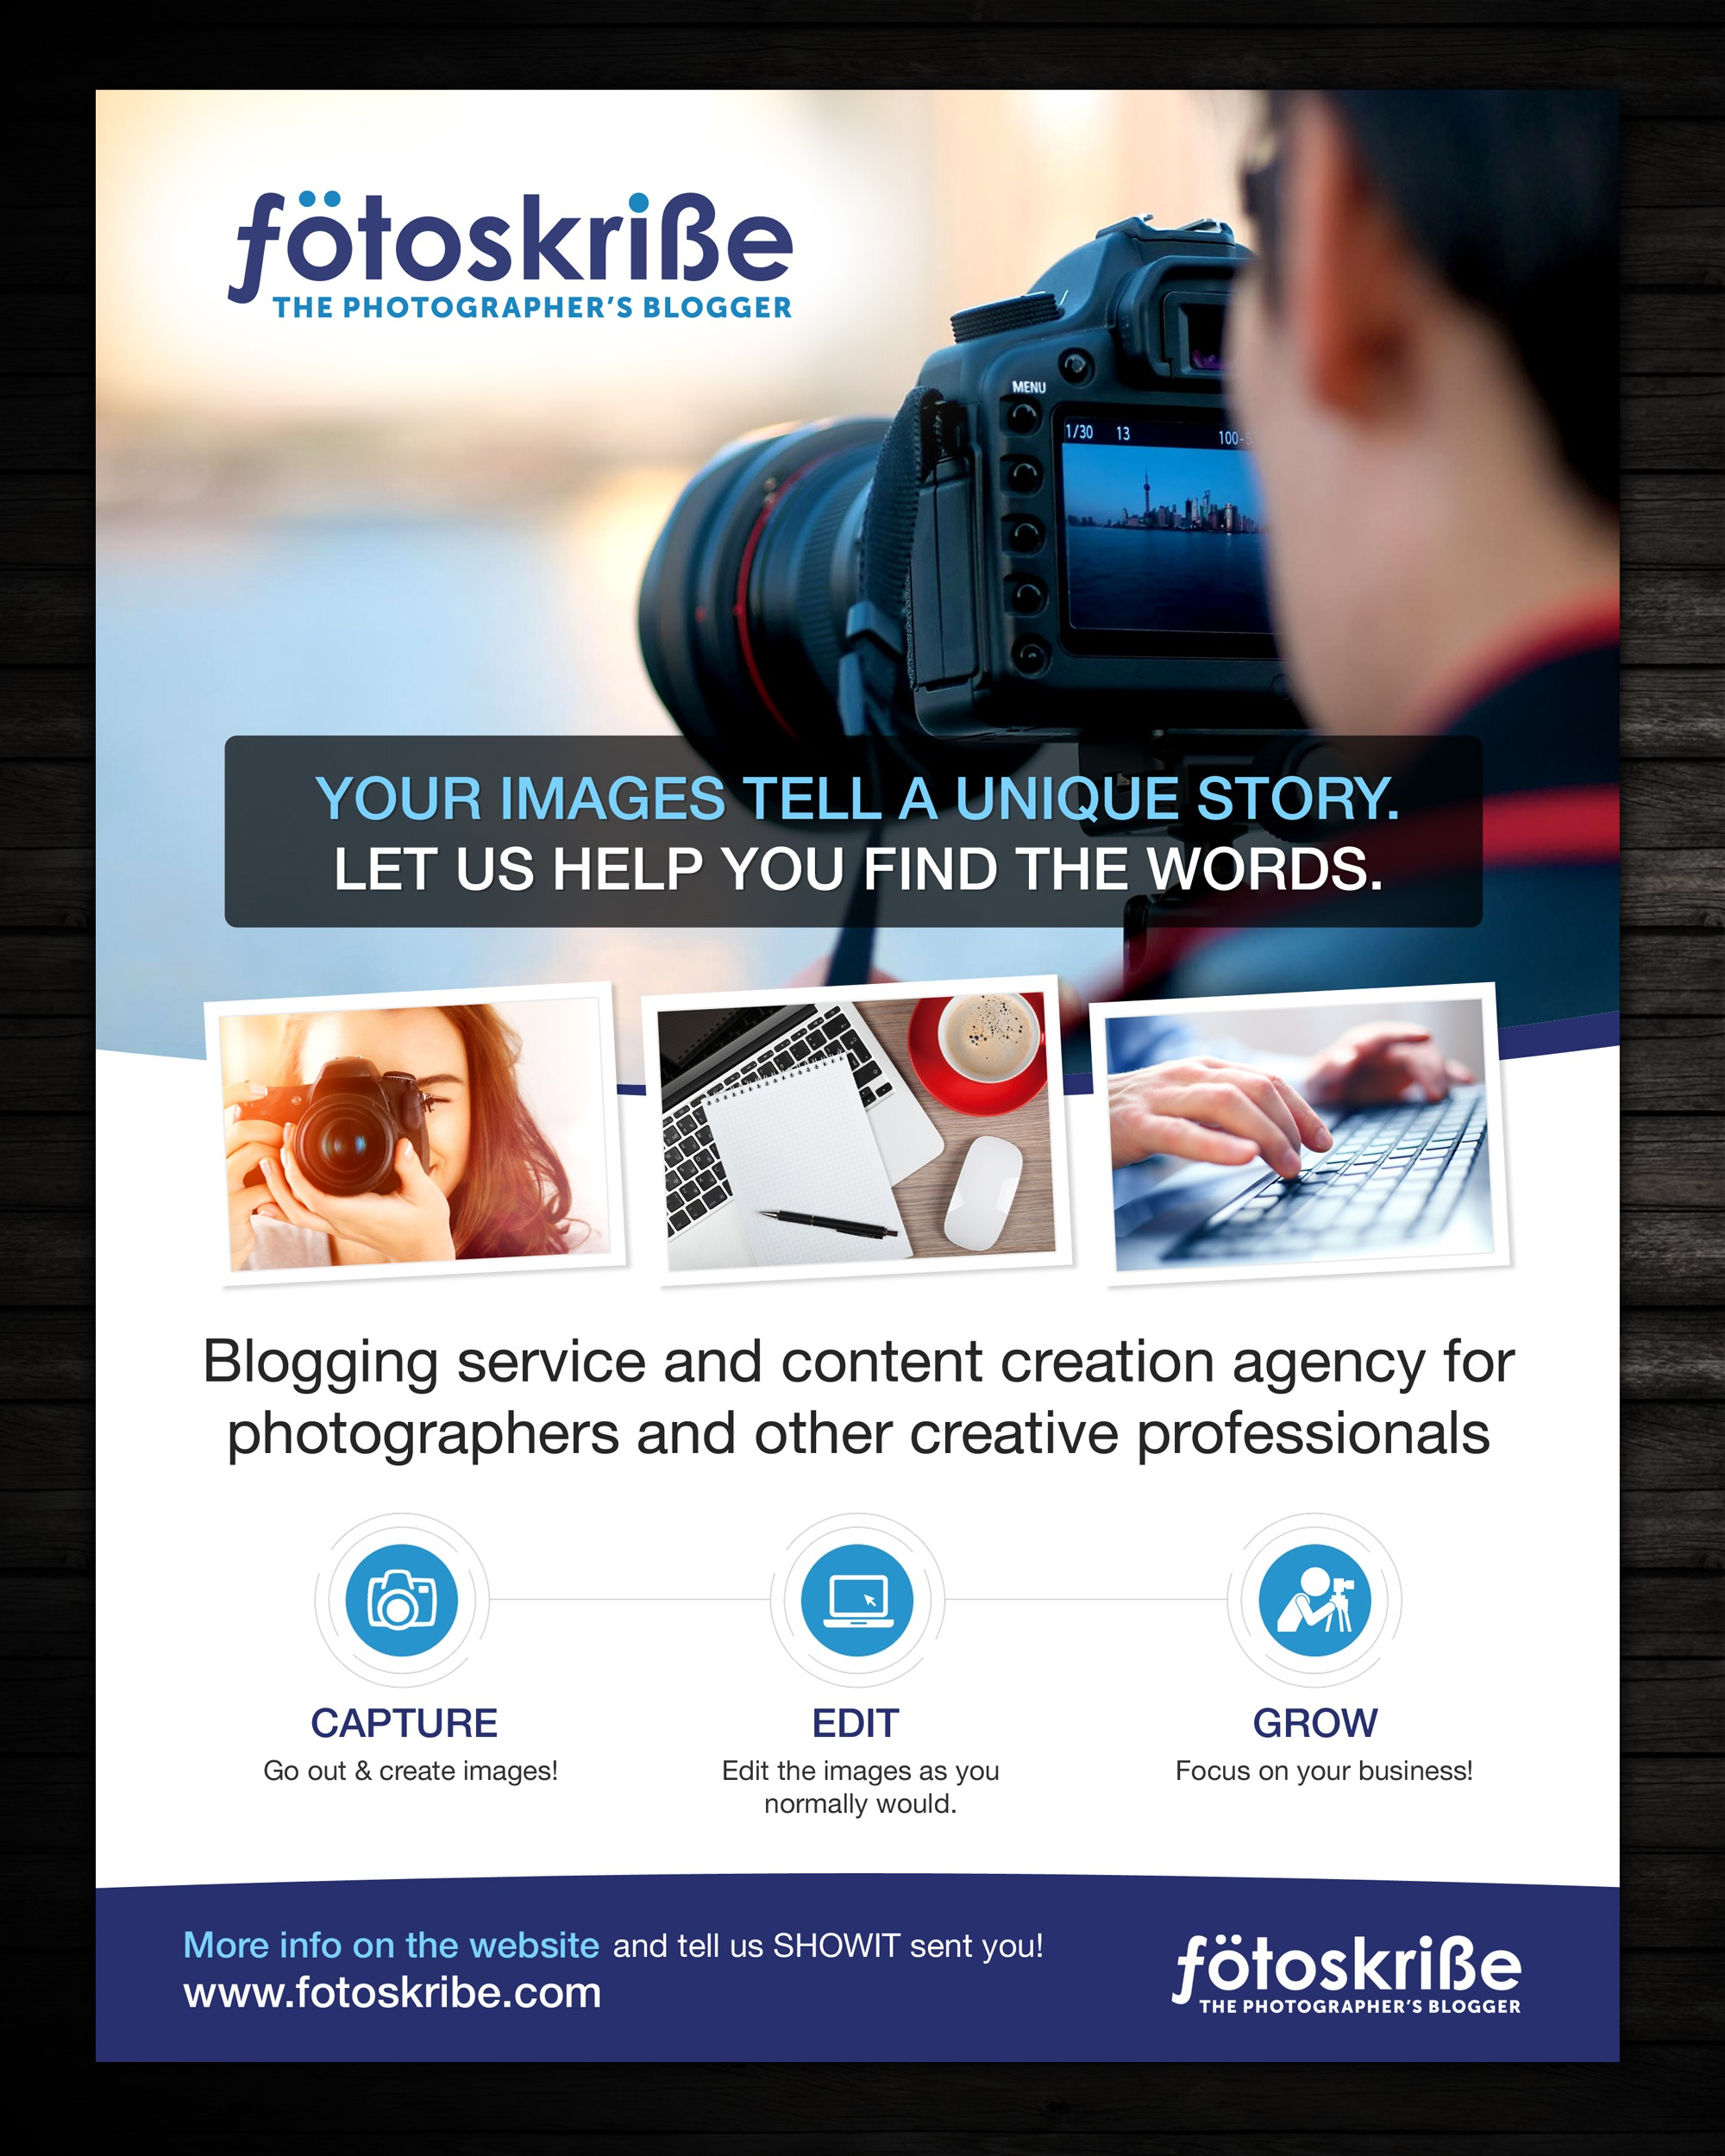 Ebook Ad for Fotoskribe, the Photographer's Blogger